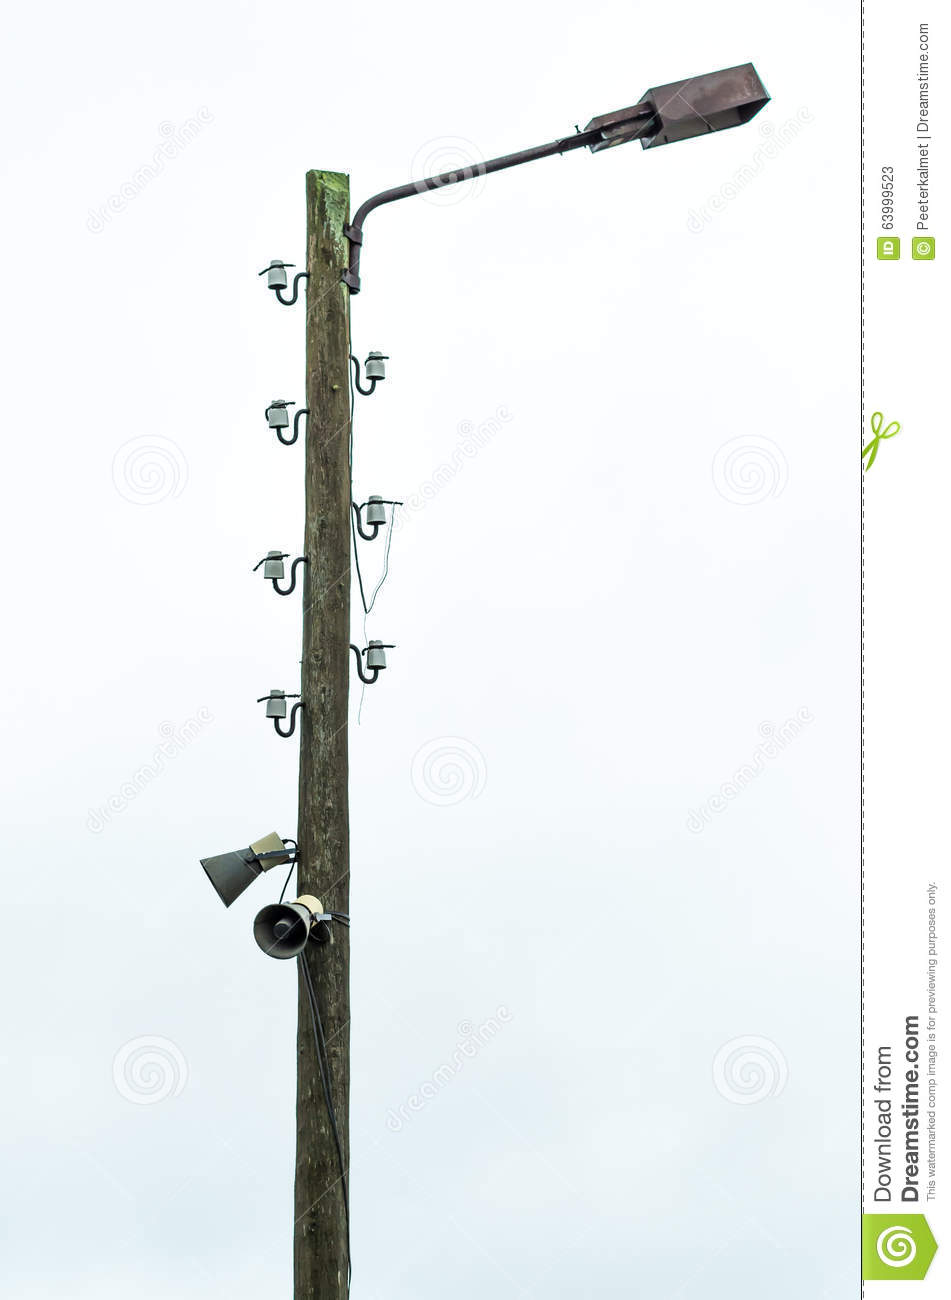 Old Electric Lamp Post With Speakers Stock Photo - Image: 63999523